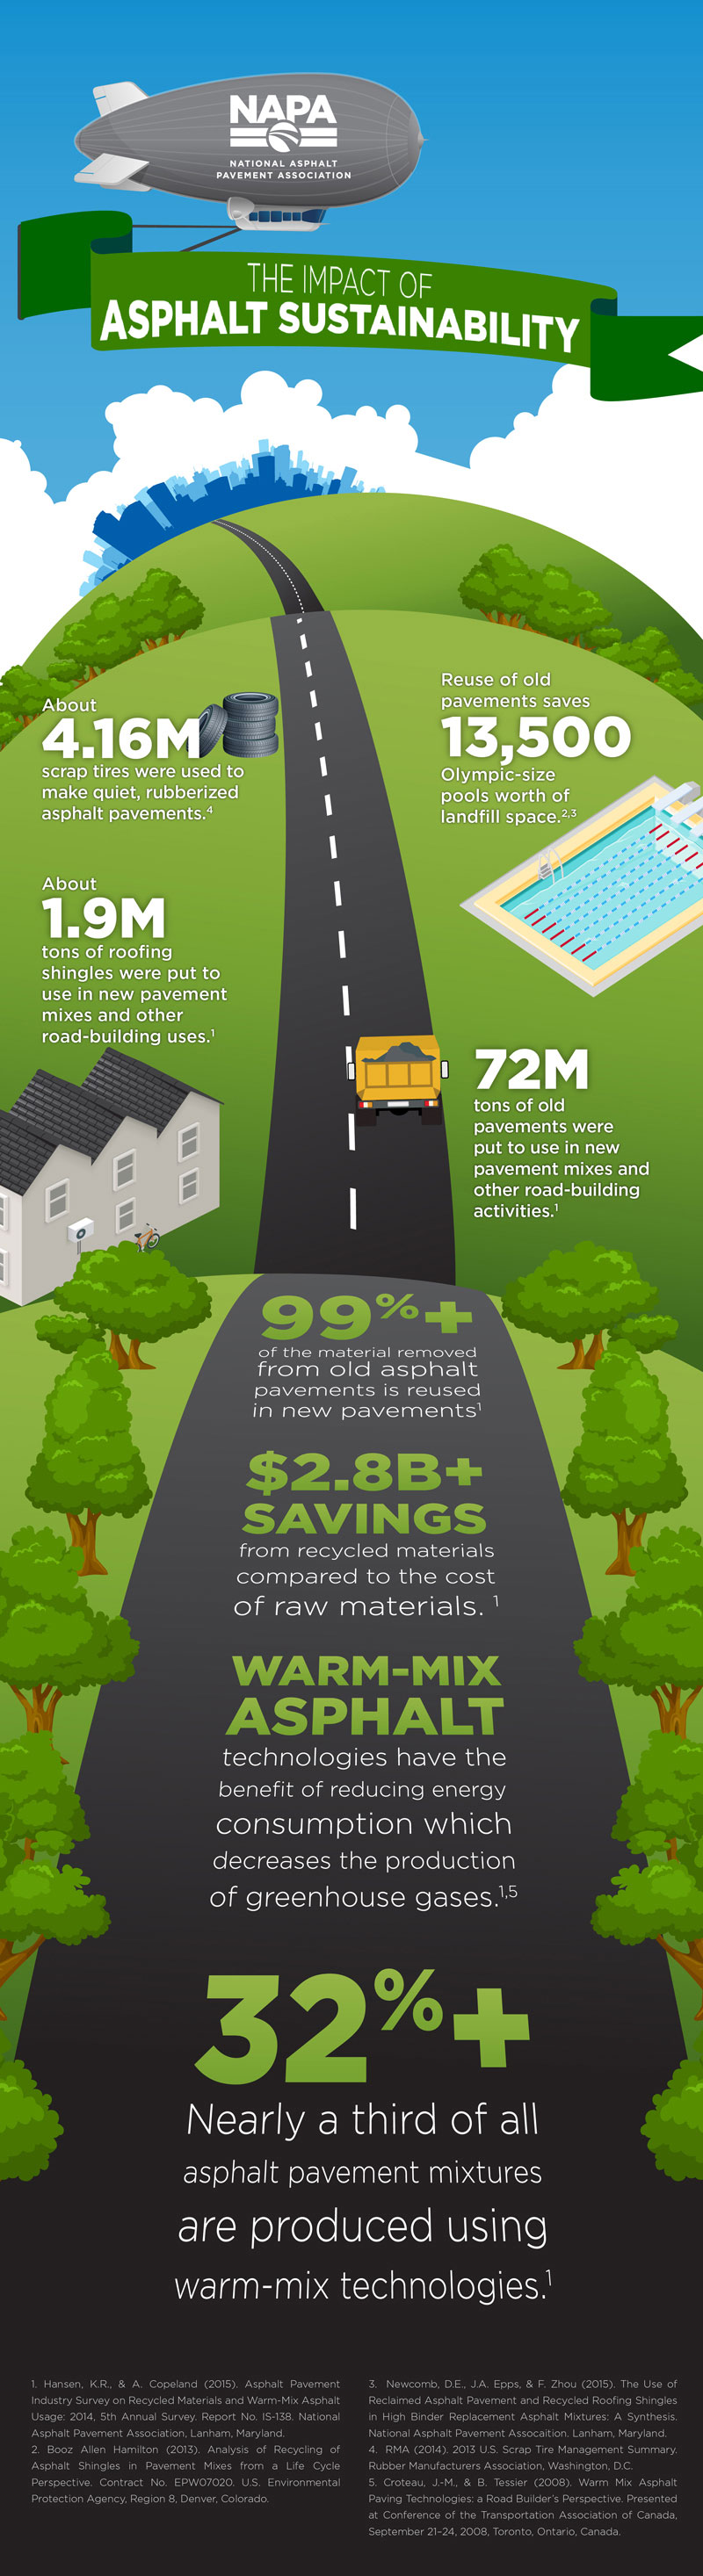 Asphalt Sustainability